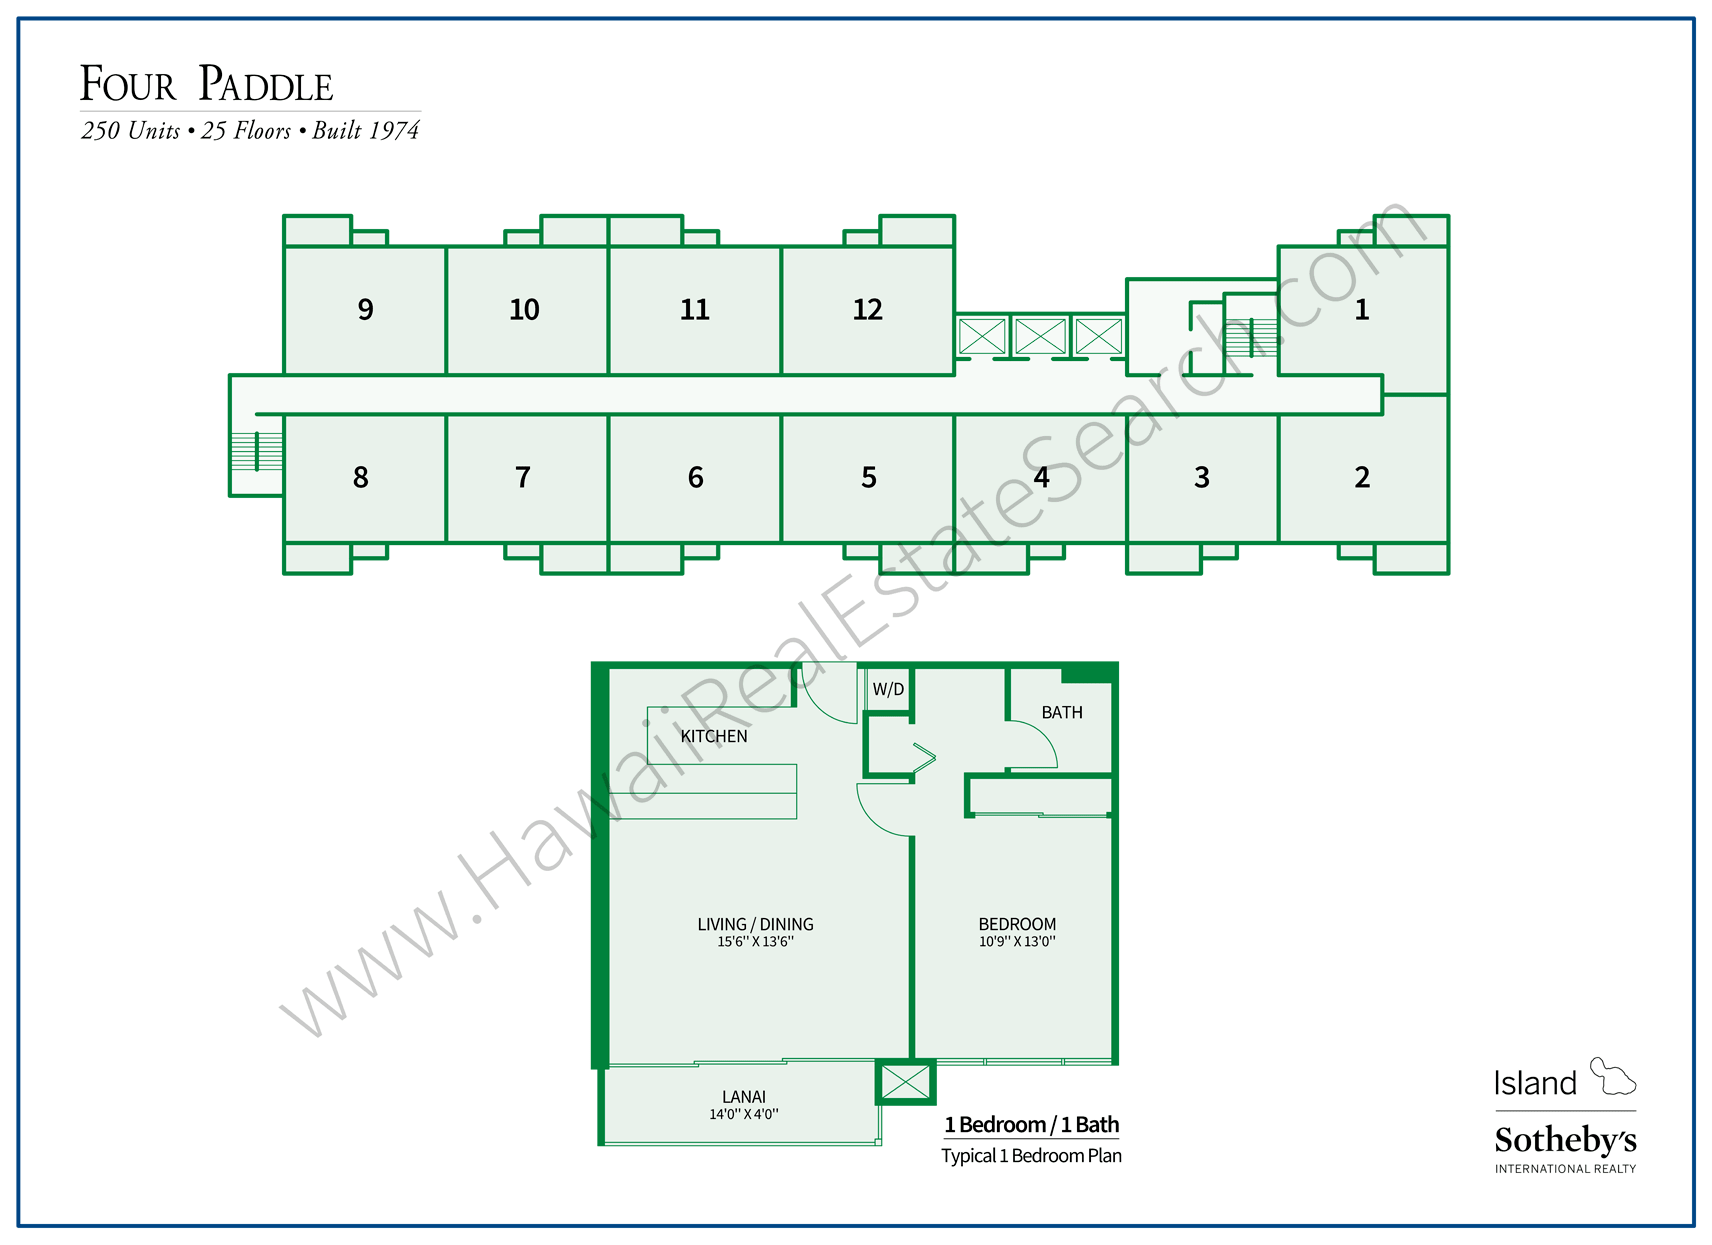 Four Paddle Property Map and Floor Plan